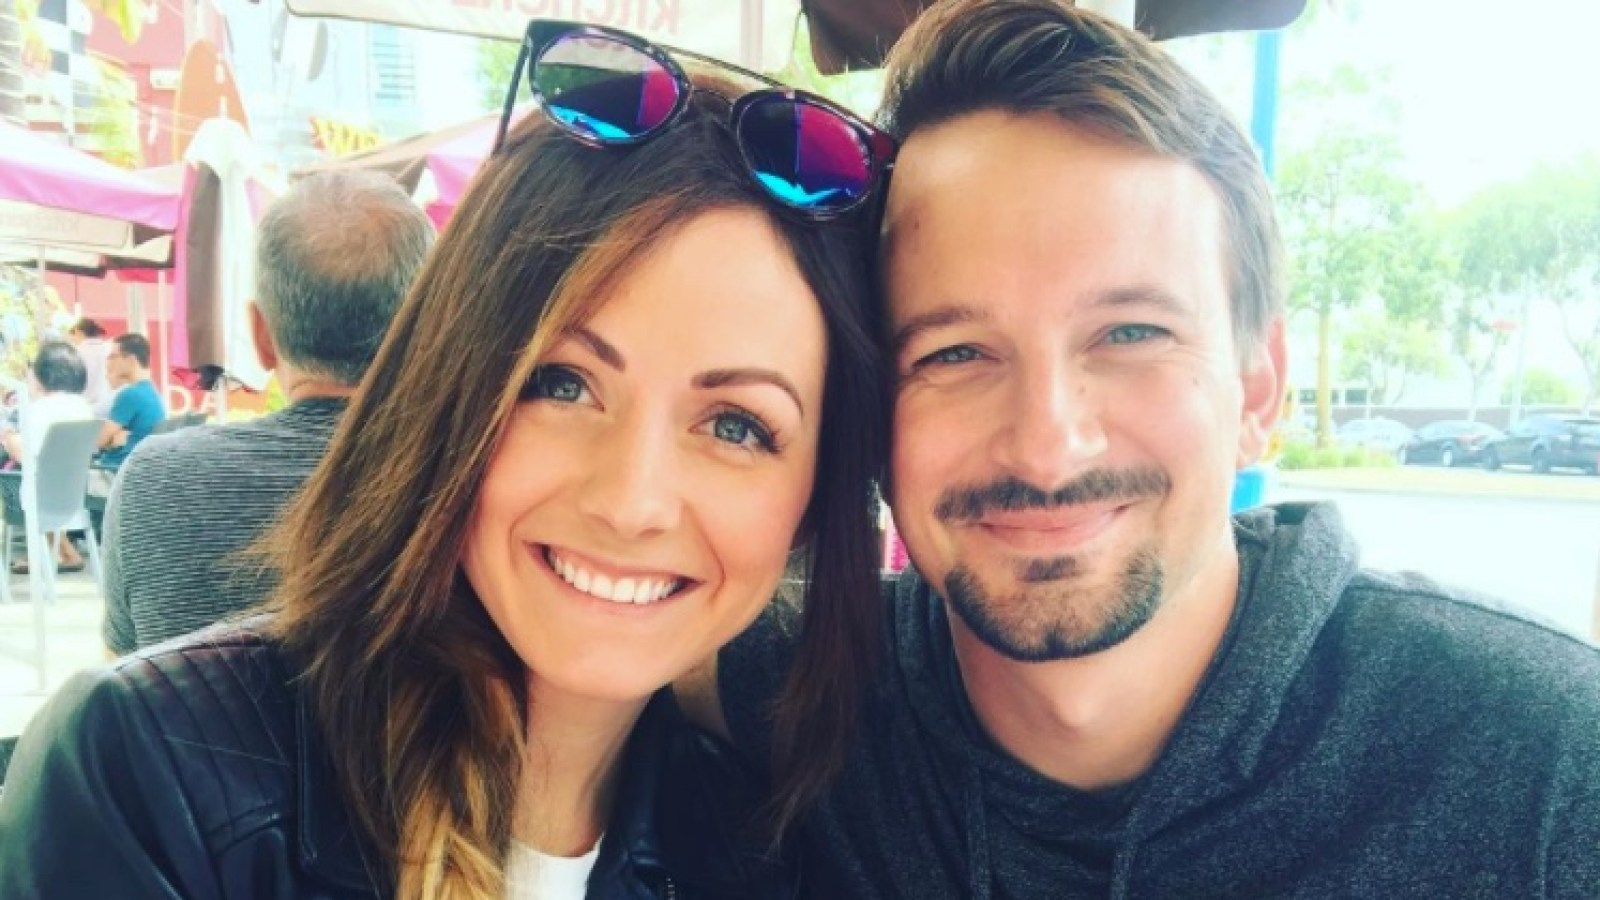 Carly And Evan Wedding.Bachelor In Paradise Stars Evan Bass And Carly Waddell Are Married